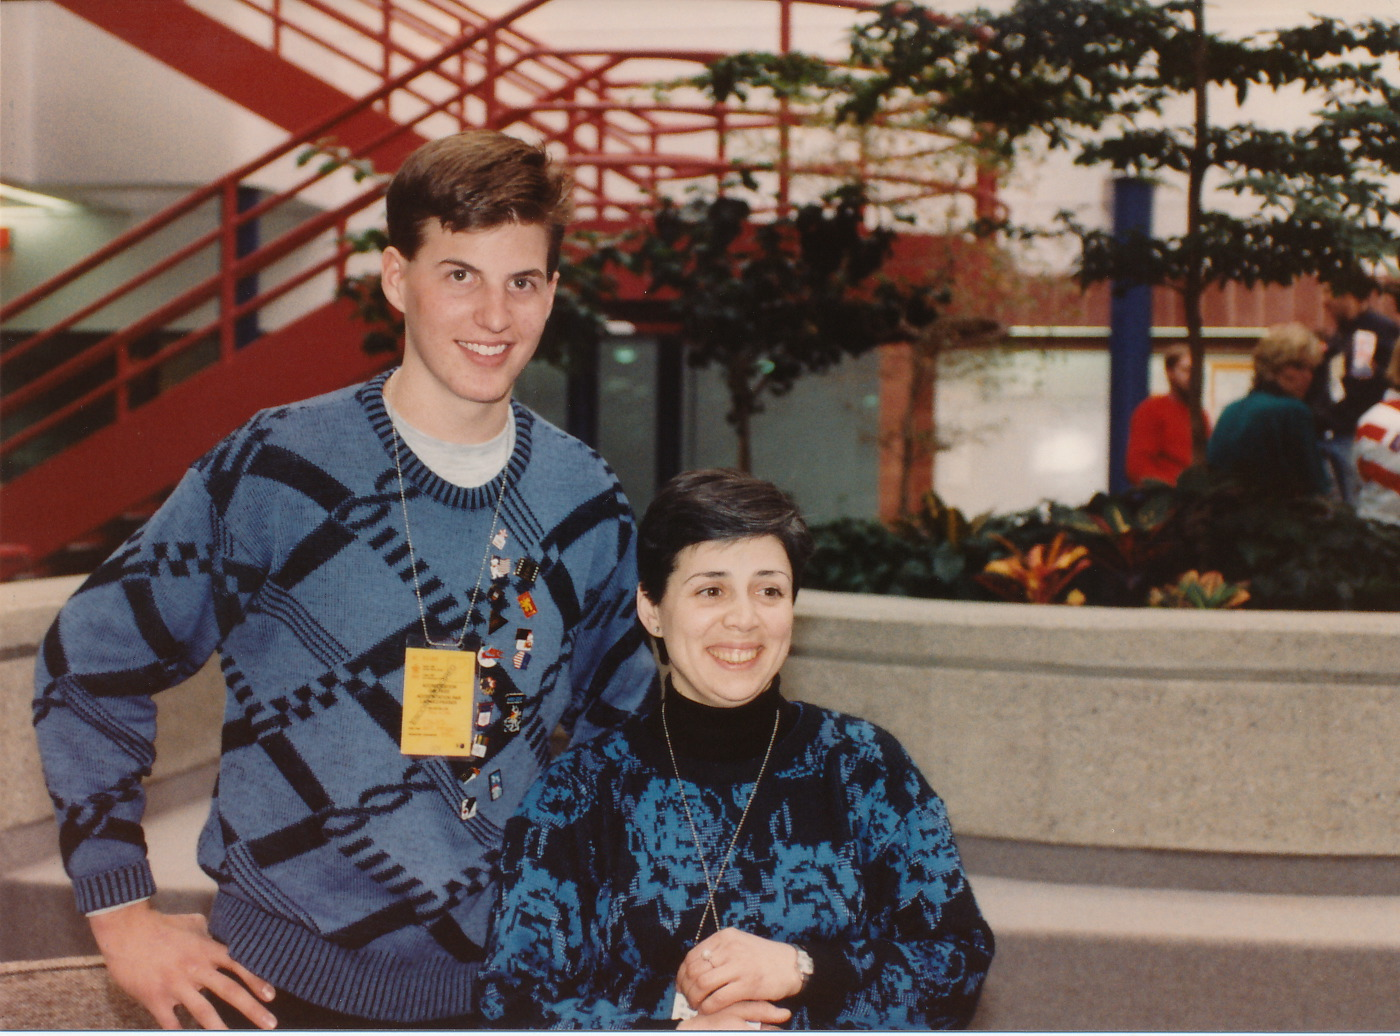 Jeff with Irina Rodnina, Olympic Gold Medalist, 1988